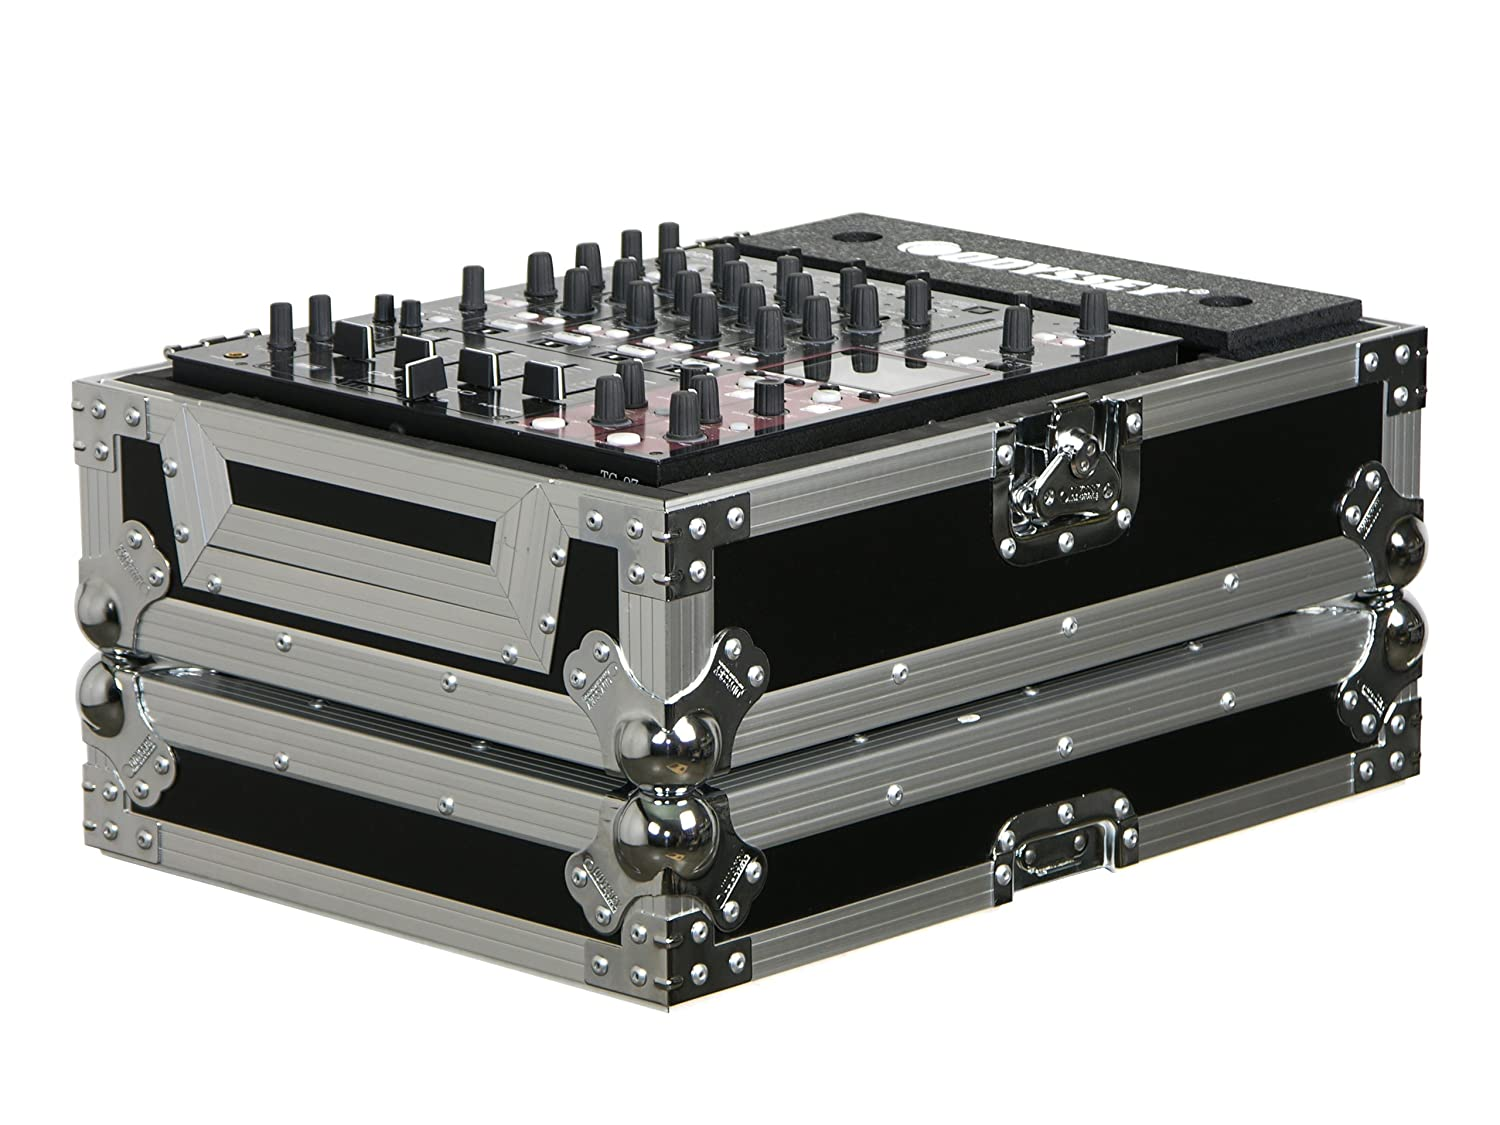 Odyssey FZ12MIX Flight Zone Single Dj Mixer Ata Case: Holds Most 12 Dj Mixers Odyssey Innovative Designs